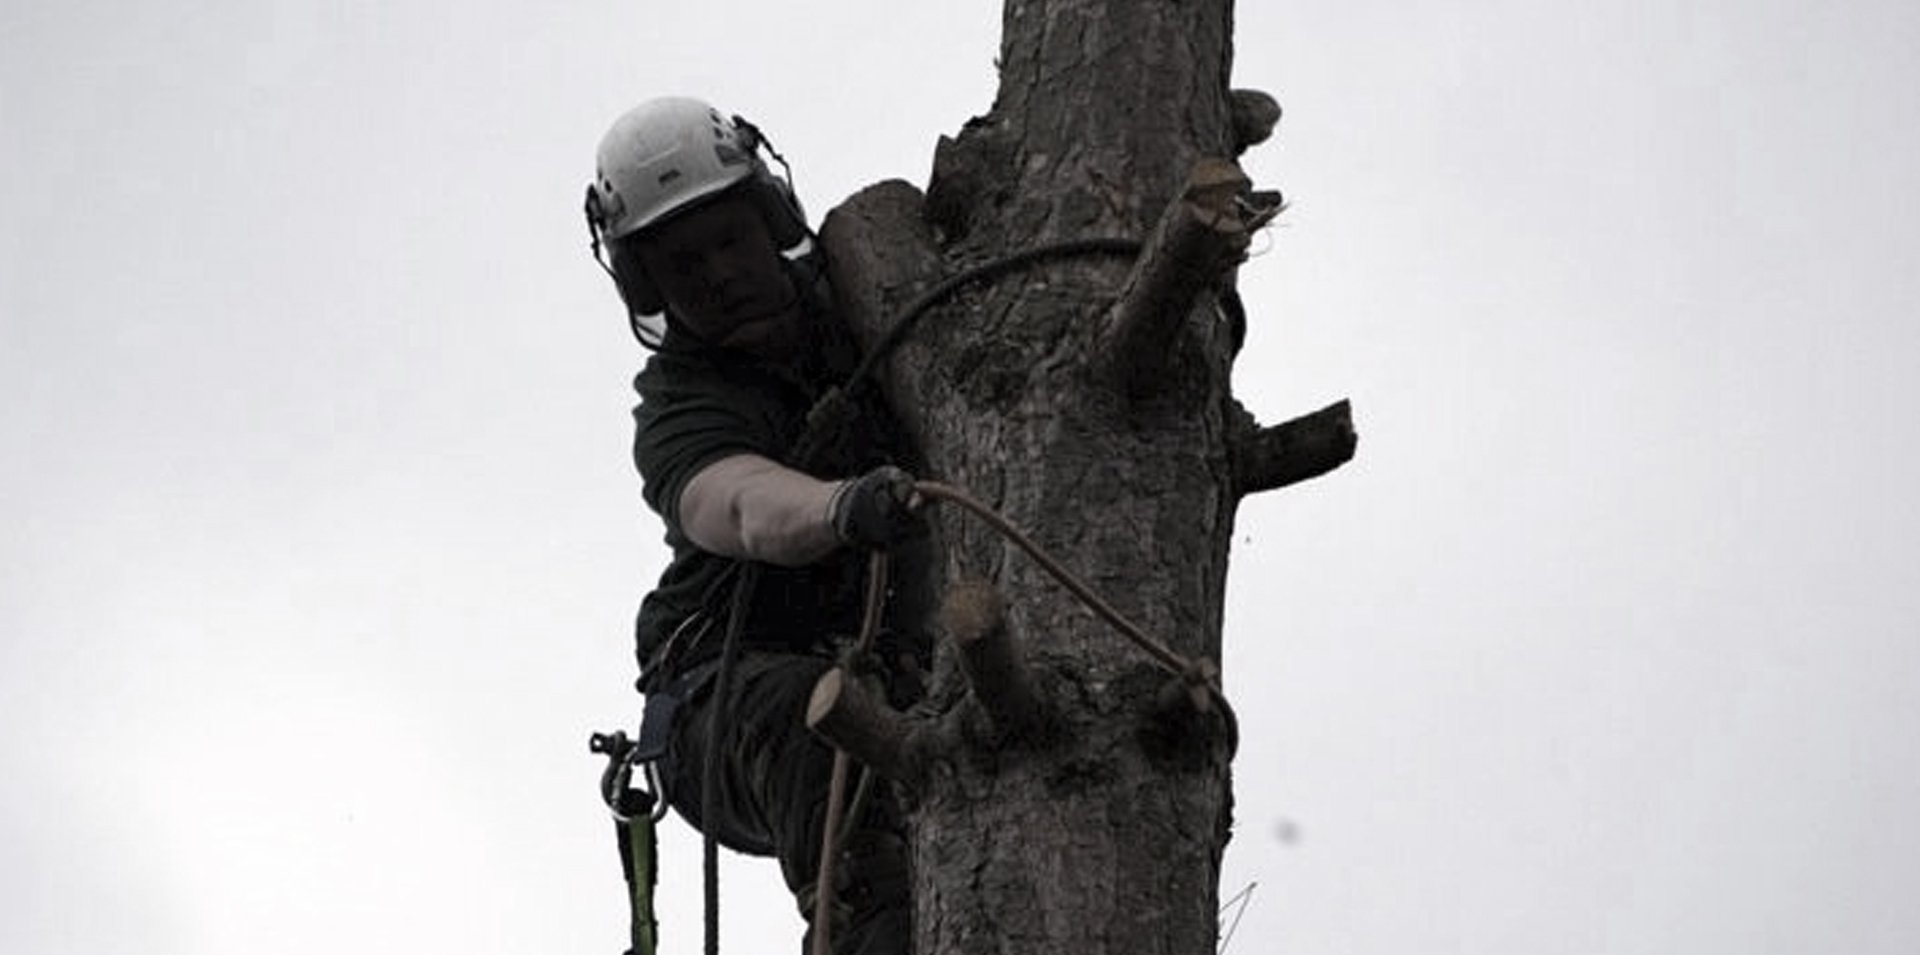 branch being cut